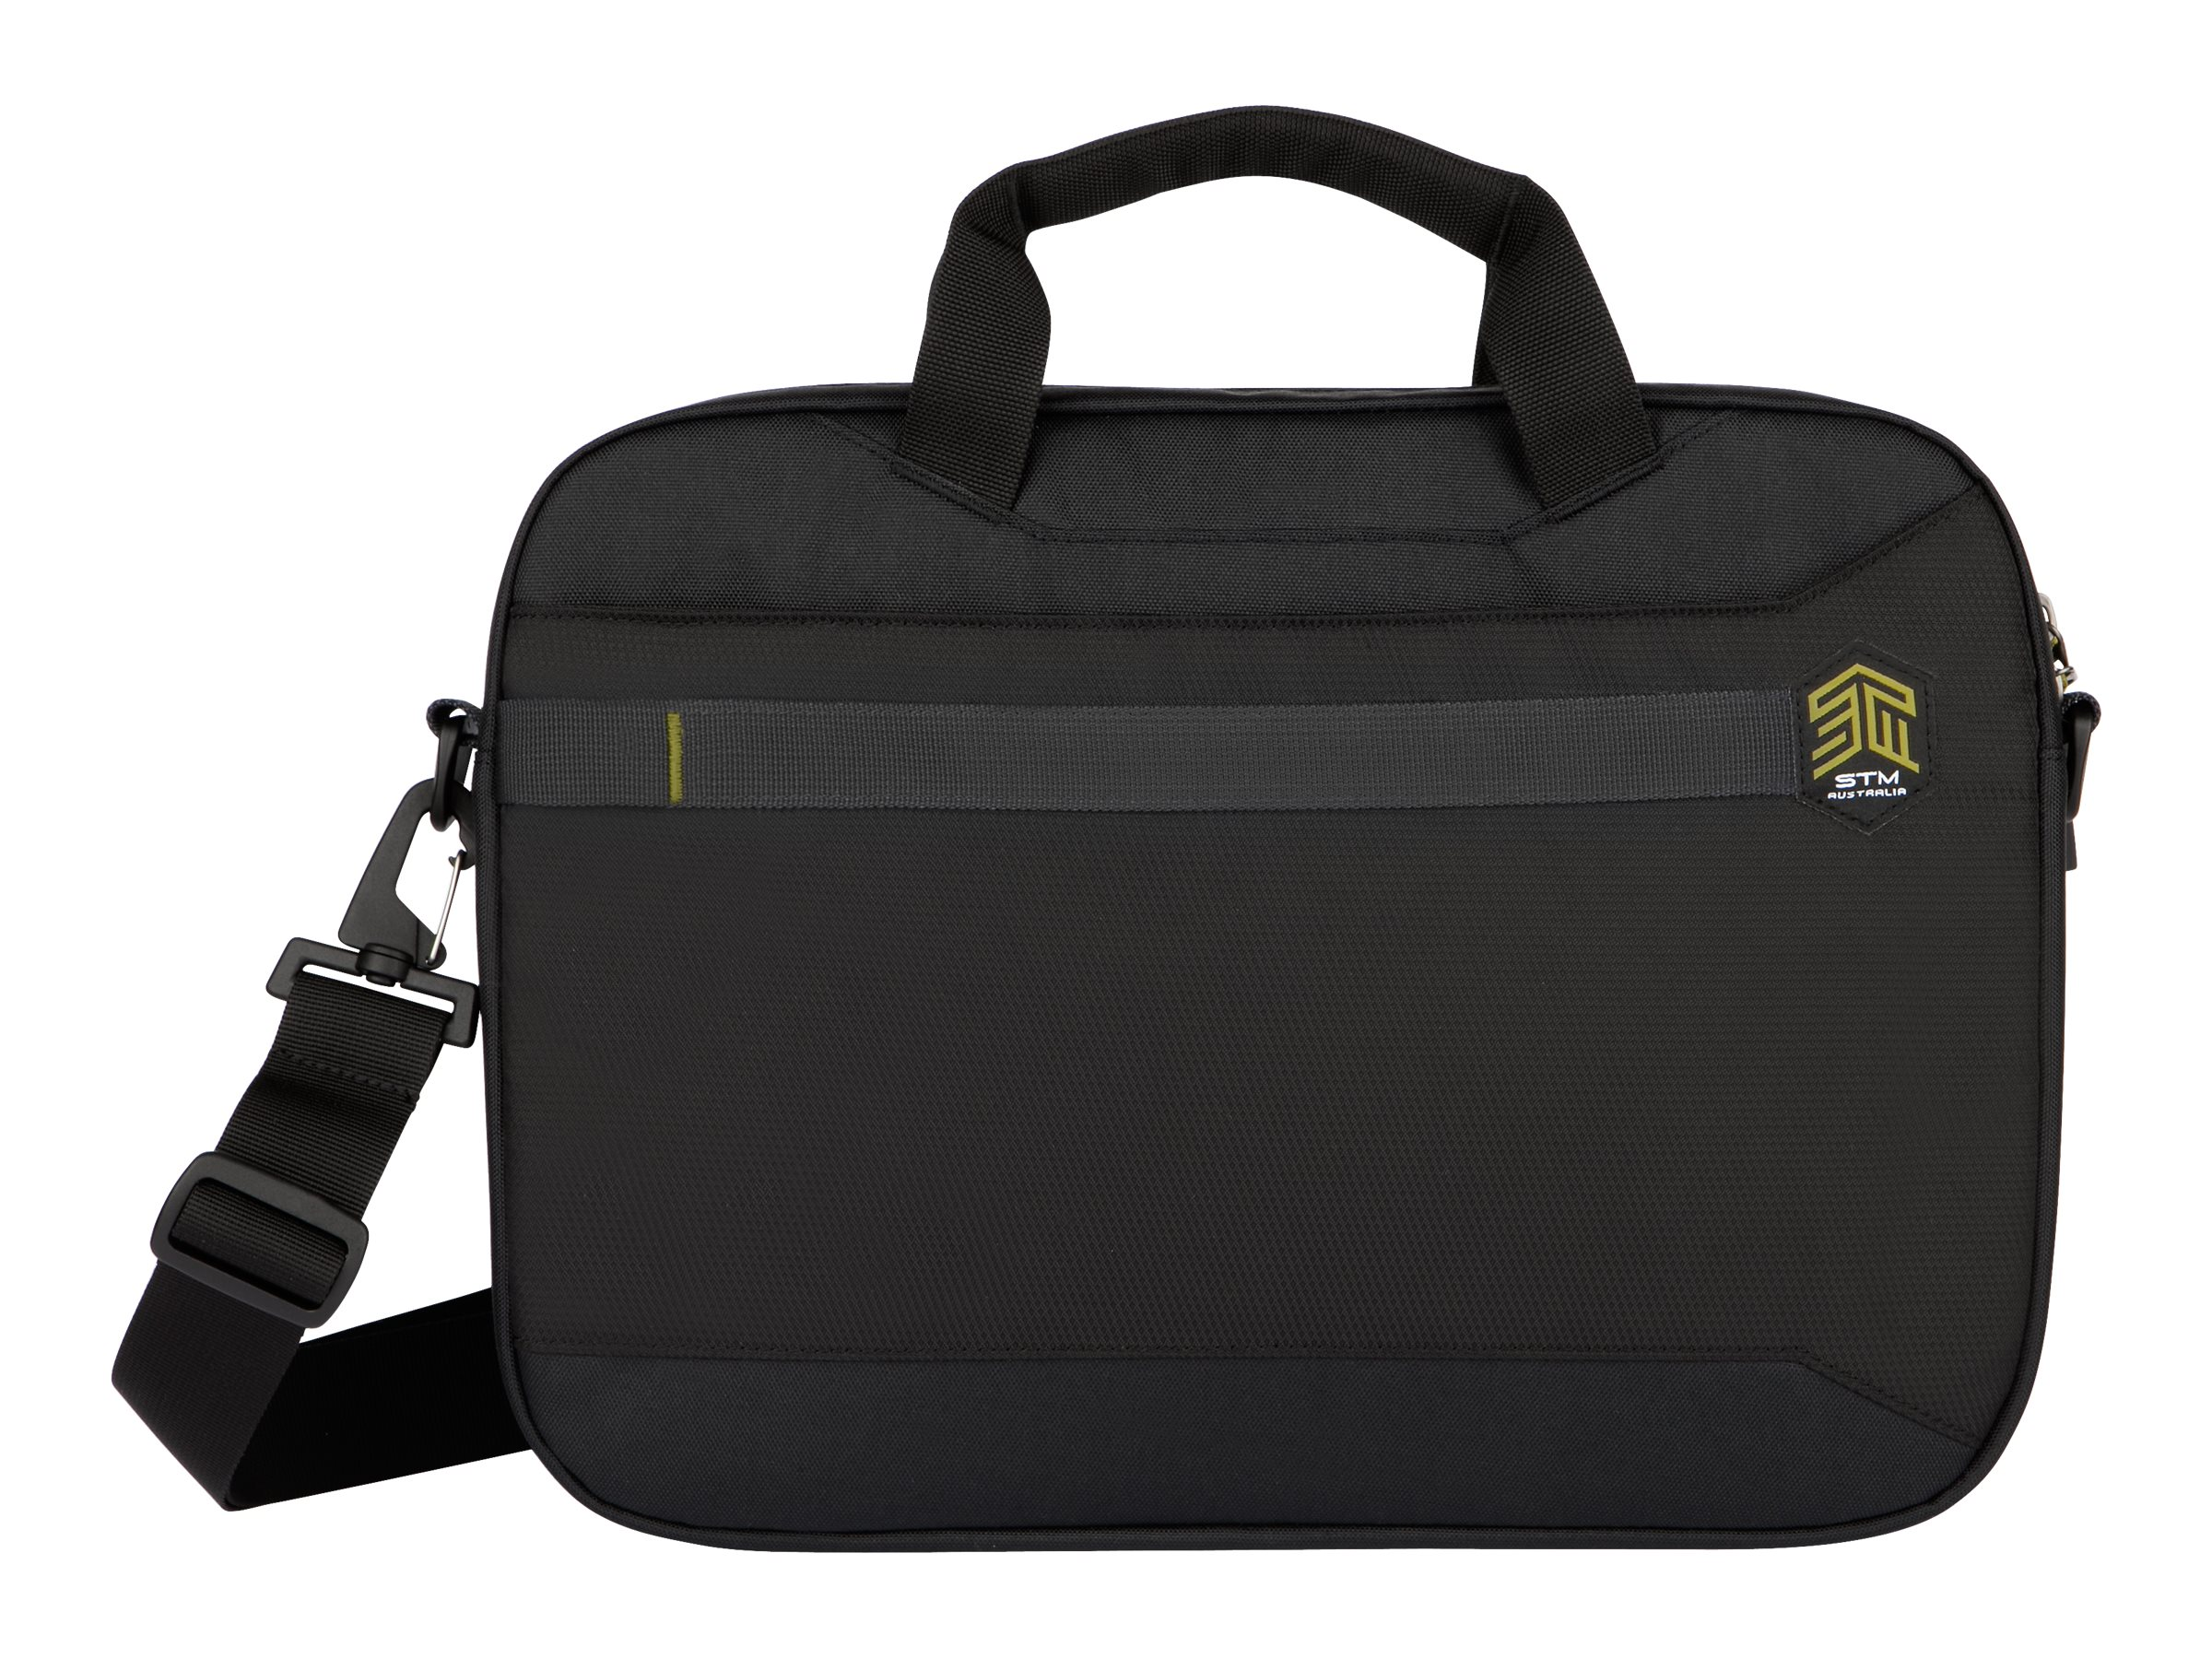 STM Chapter notebook carrying case